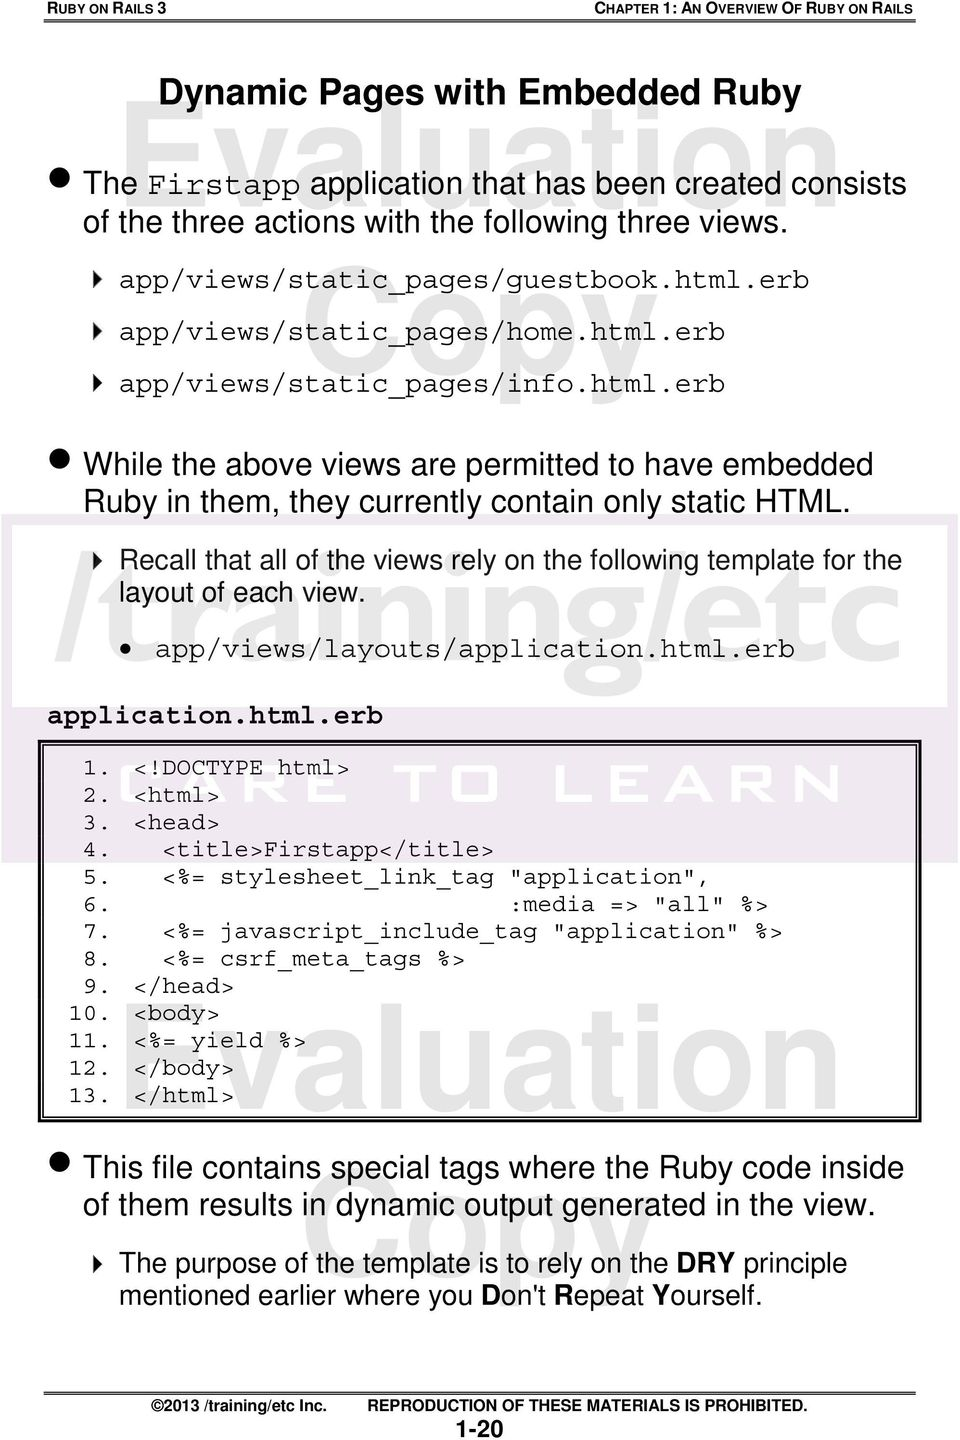 Evaluation  Chapter 1: An Overview Of Ruby Rails  Copy  6